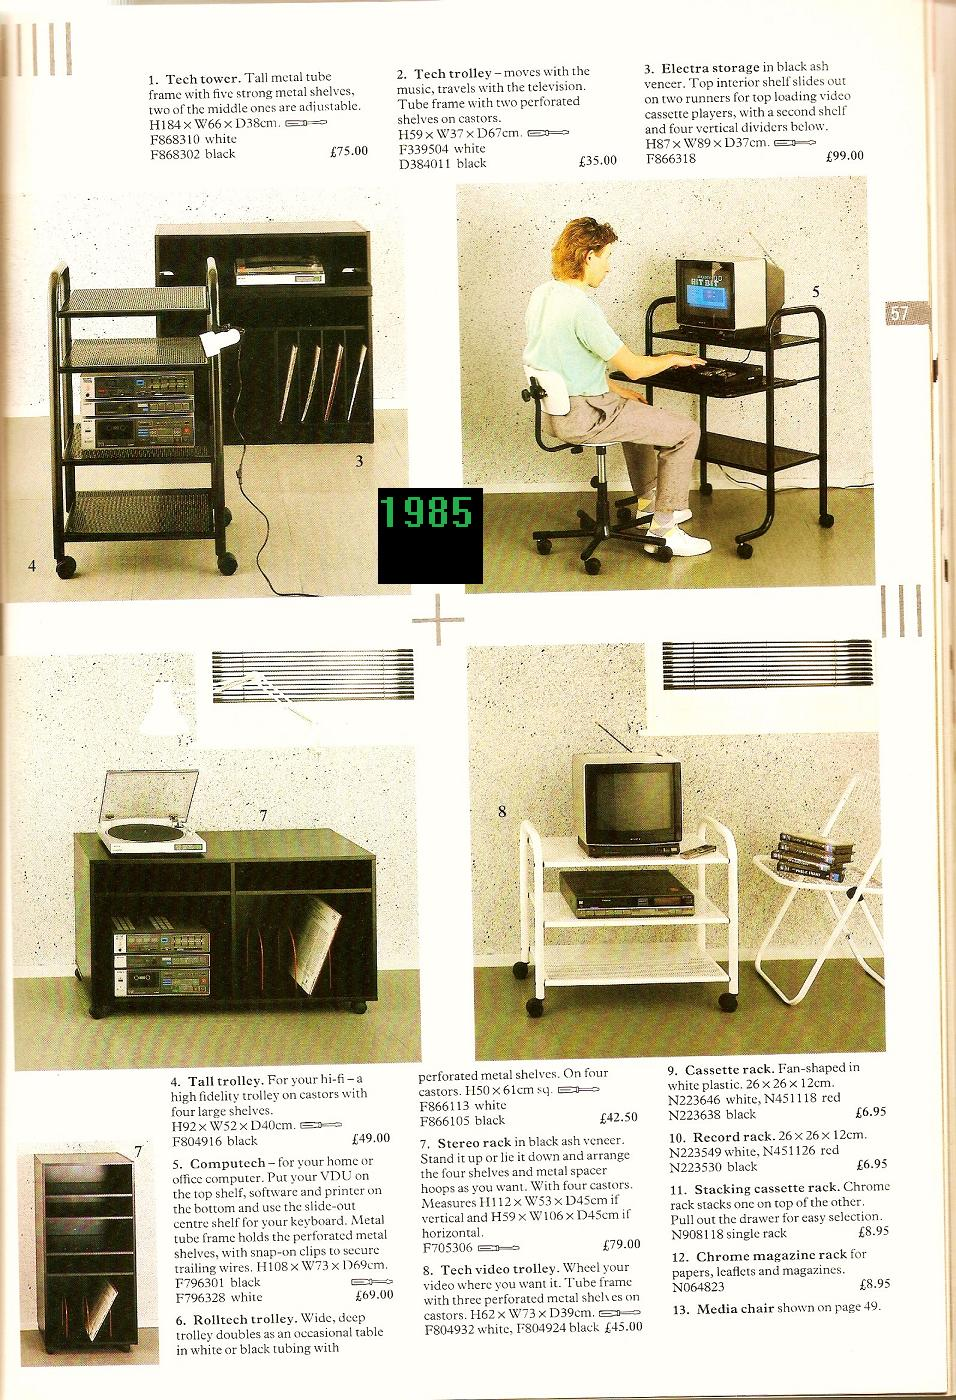 39 80s actual living life 39 80s style part 3 for 80s style furniture